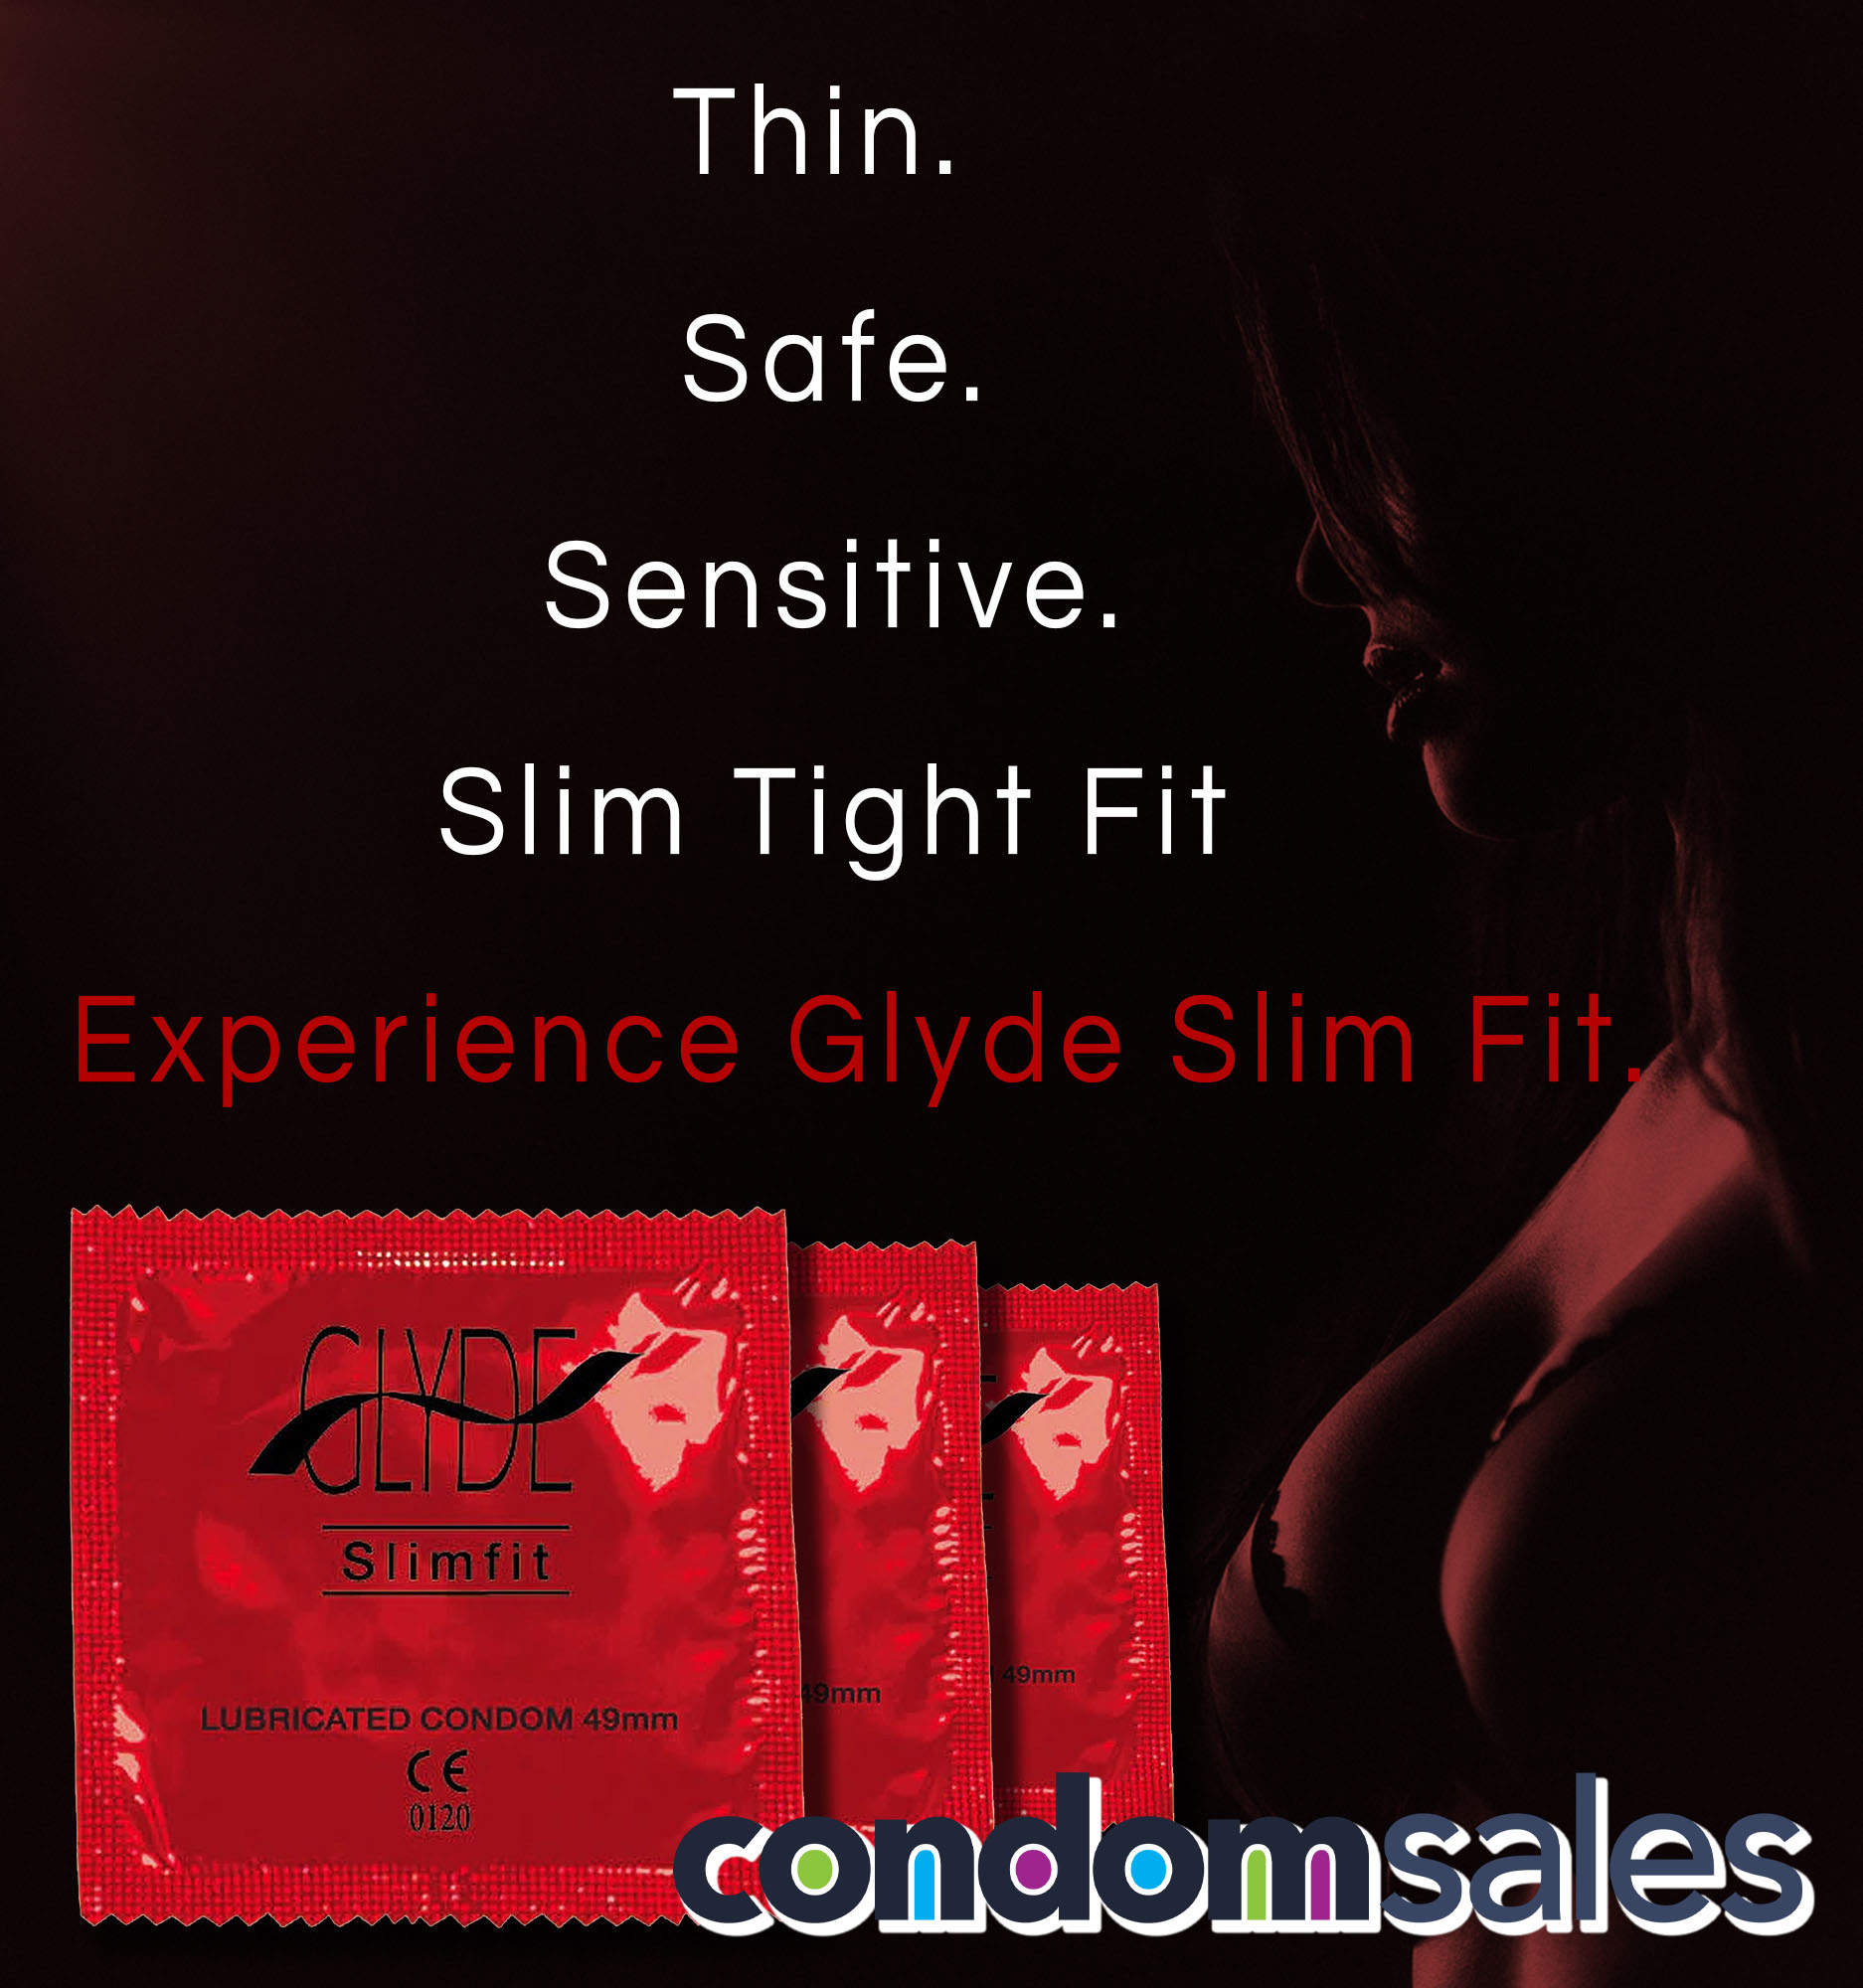 Glyde Slim Fit Condoms 24 Loose Pack - Buy Condoms Online